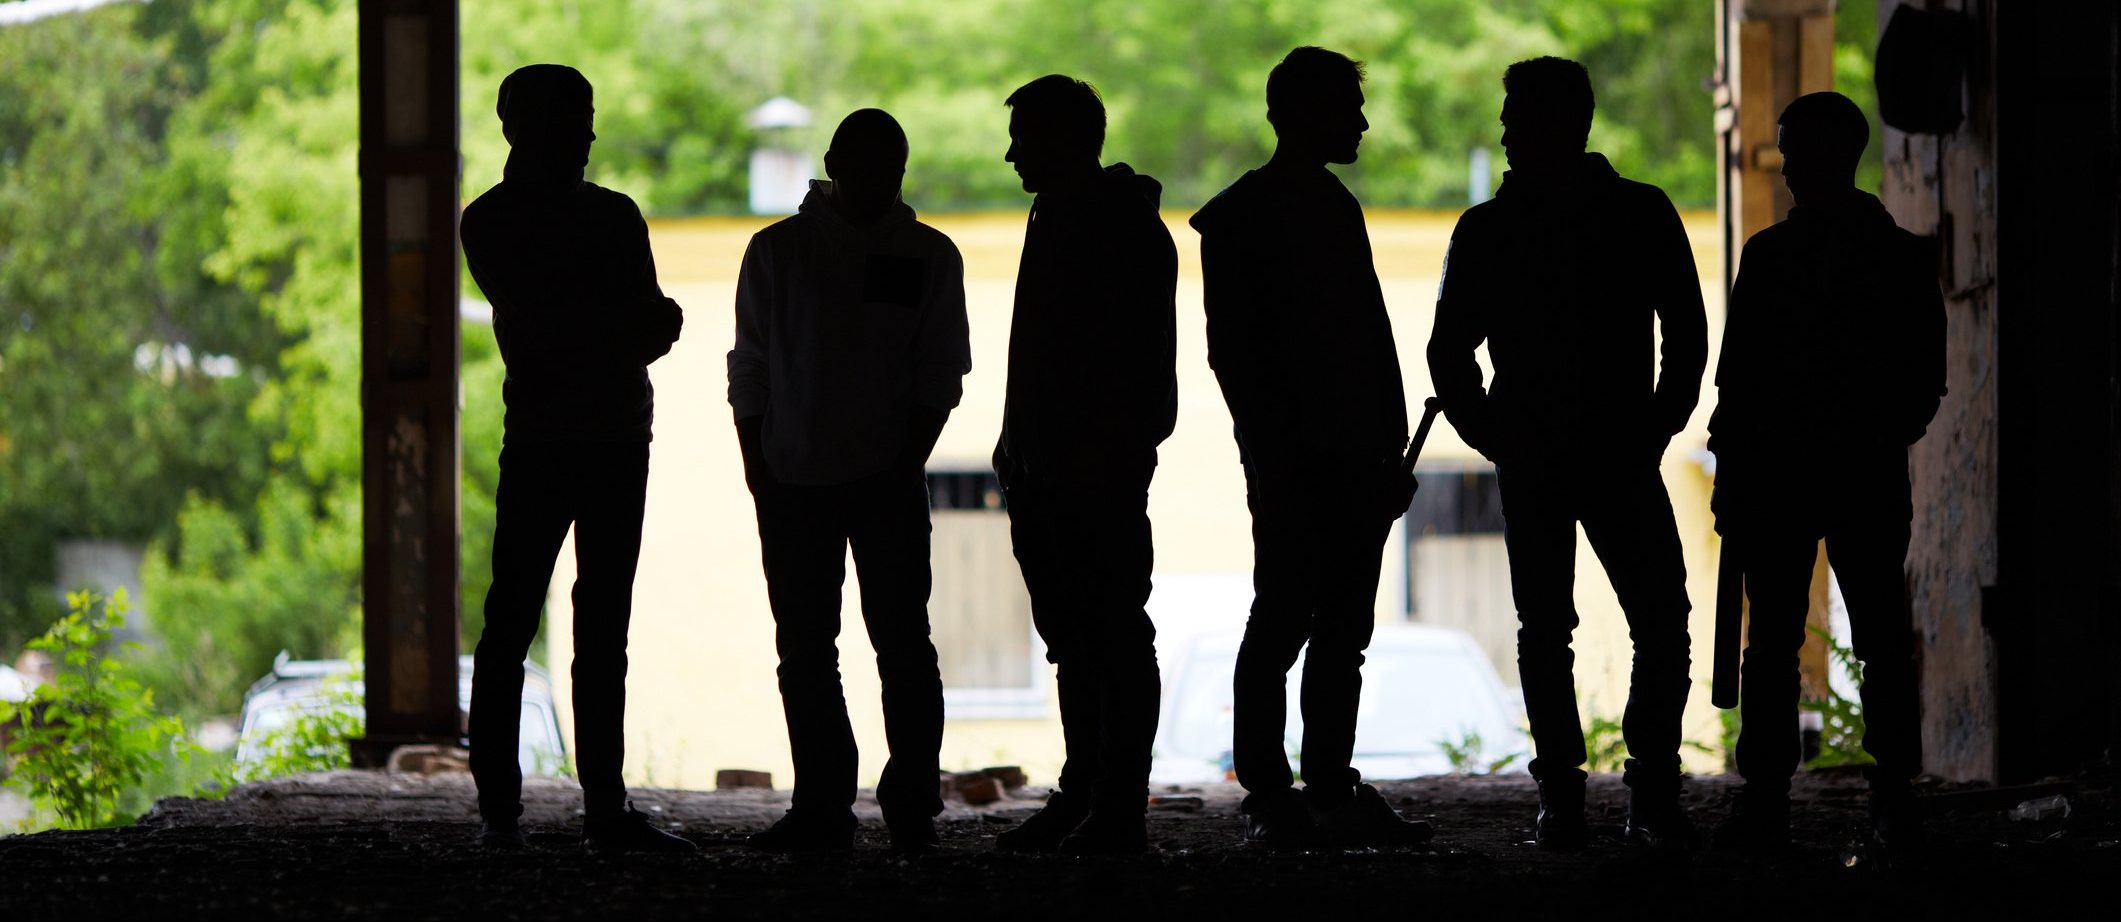 Guilty By Association and Gangs Are Misunderstood